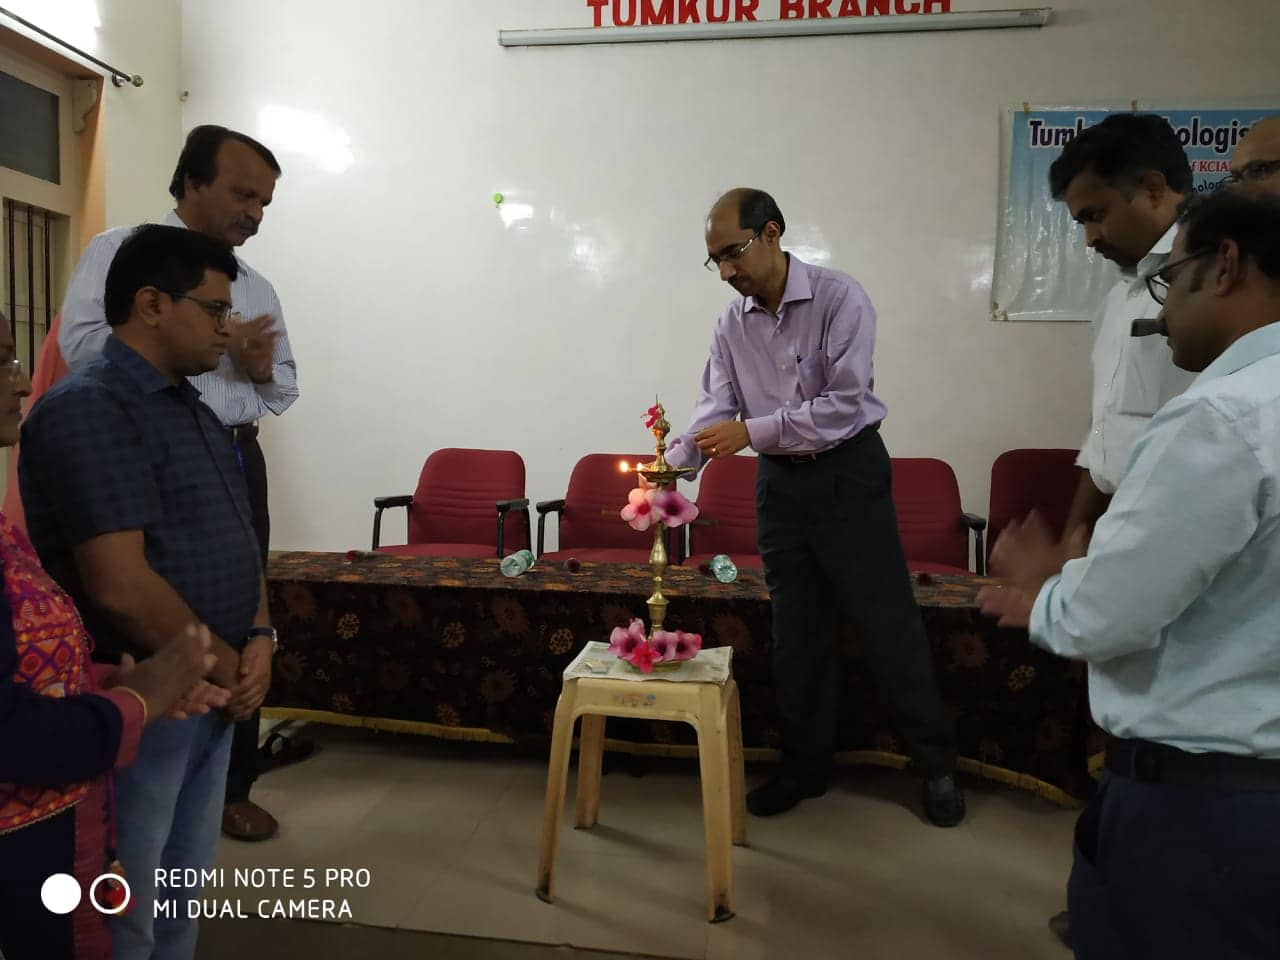 JAN 2019: Report of event held by Tumkur Pathologists